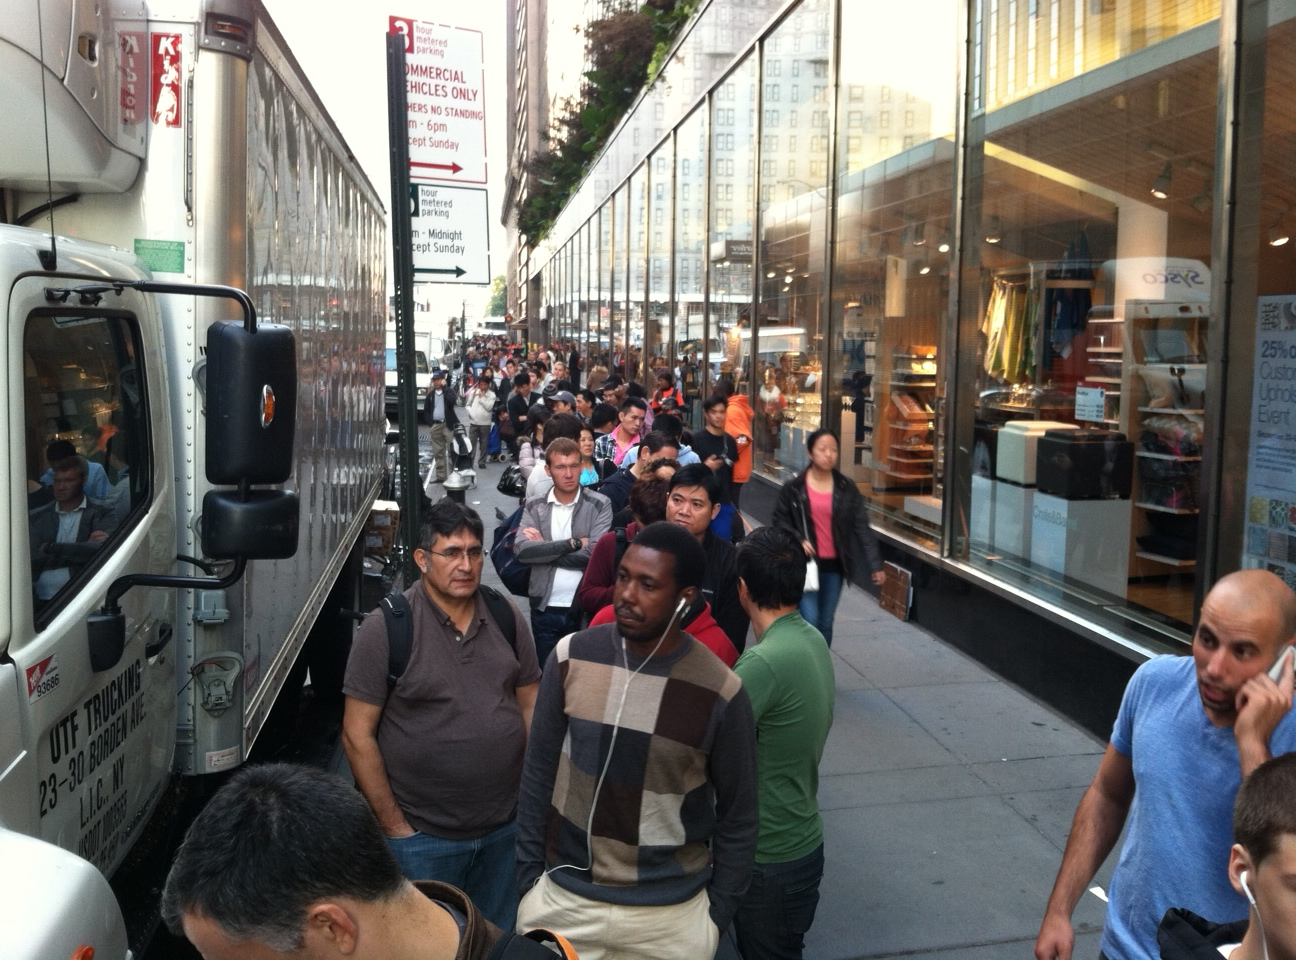 Part of the 5th Avenue iPhone line